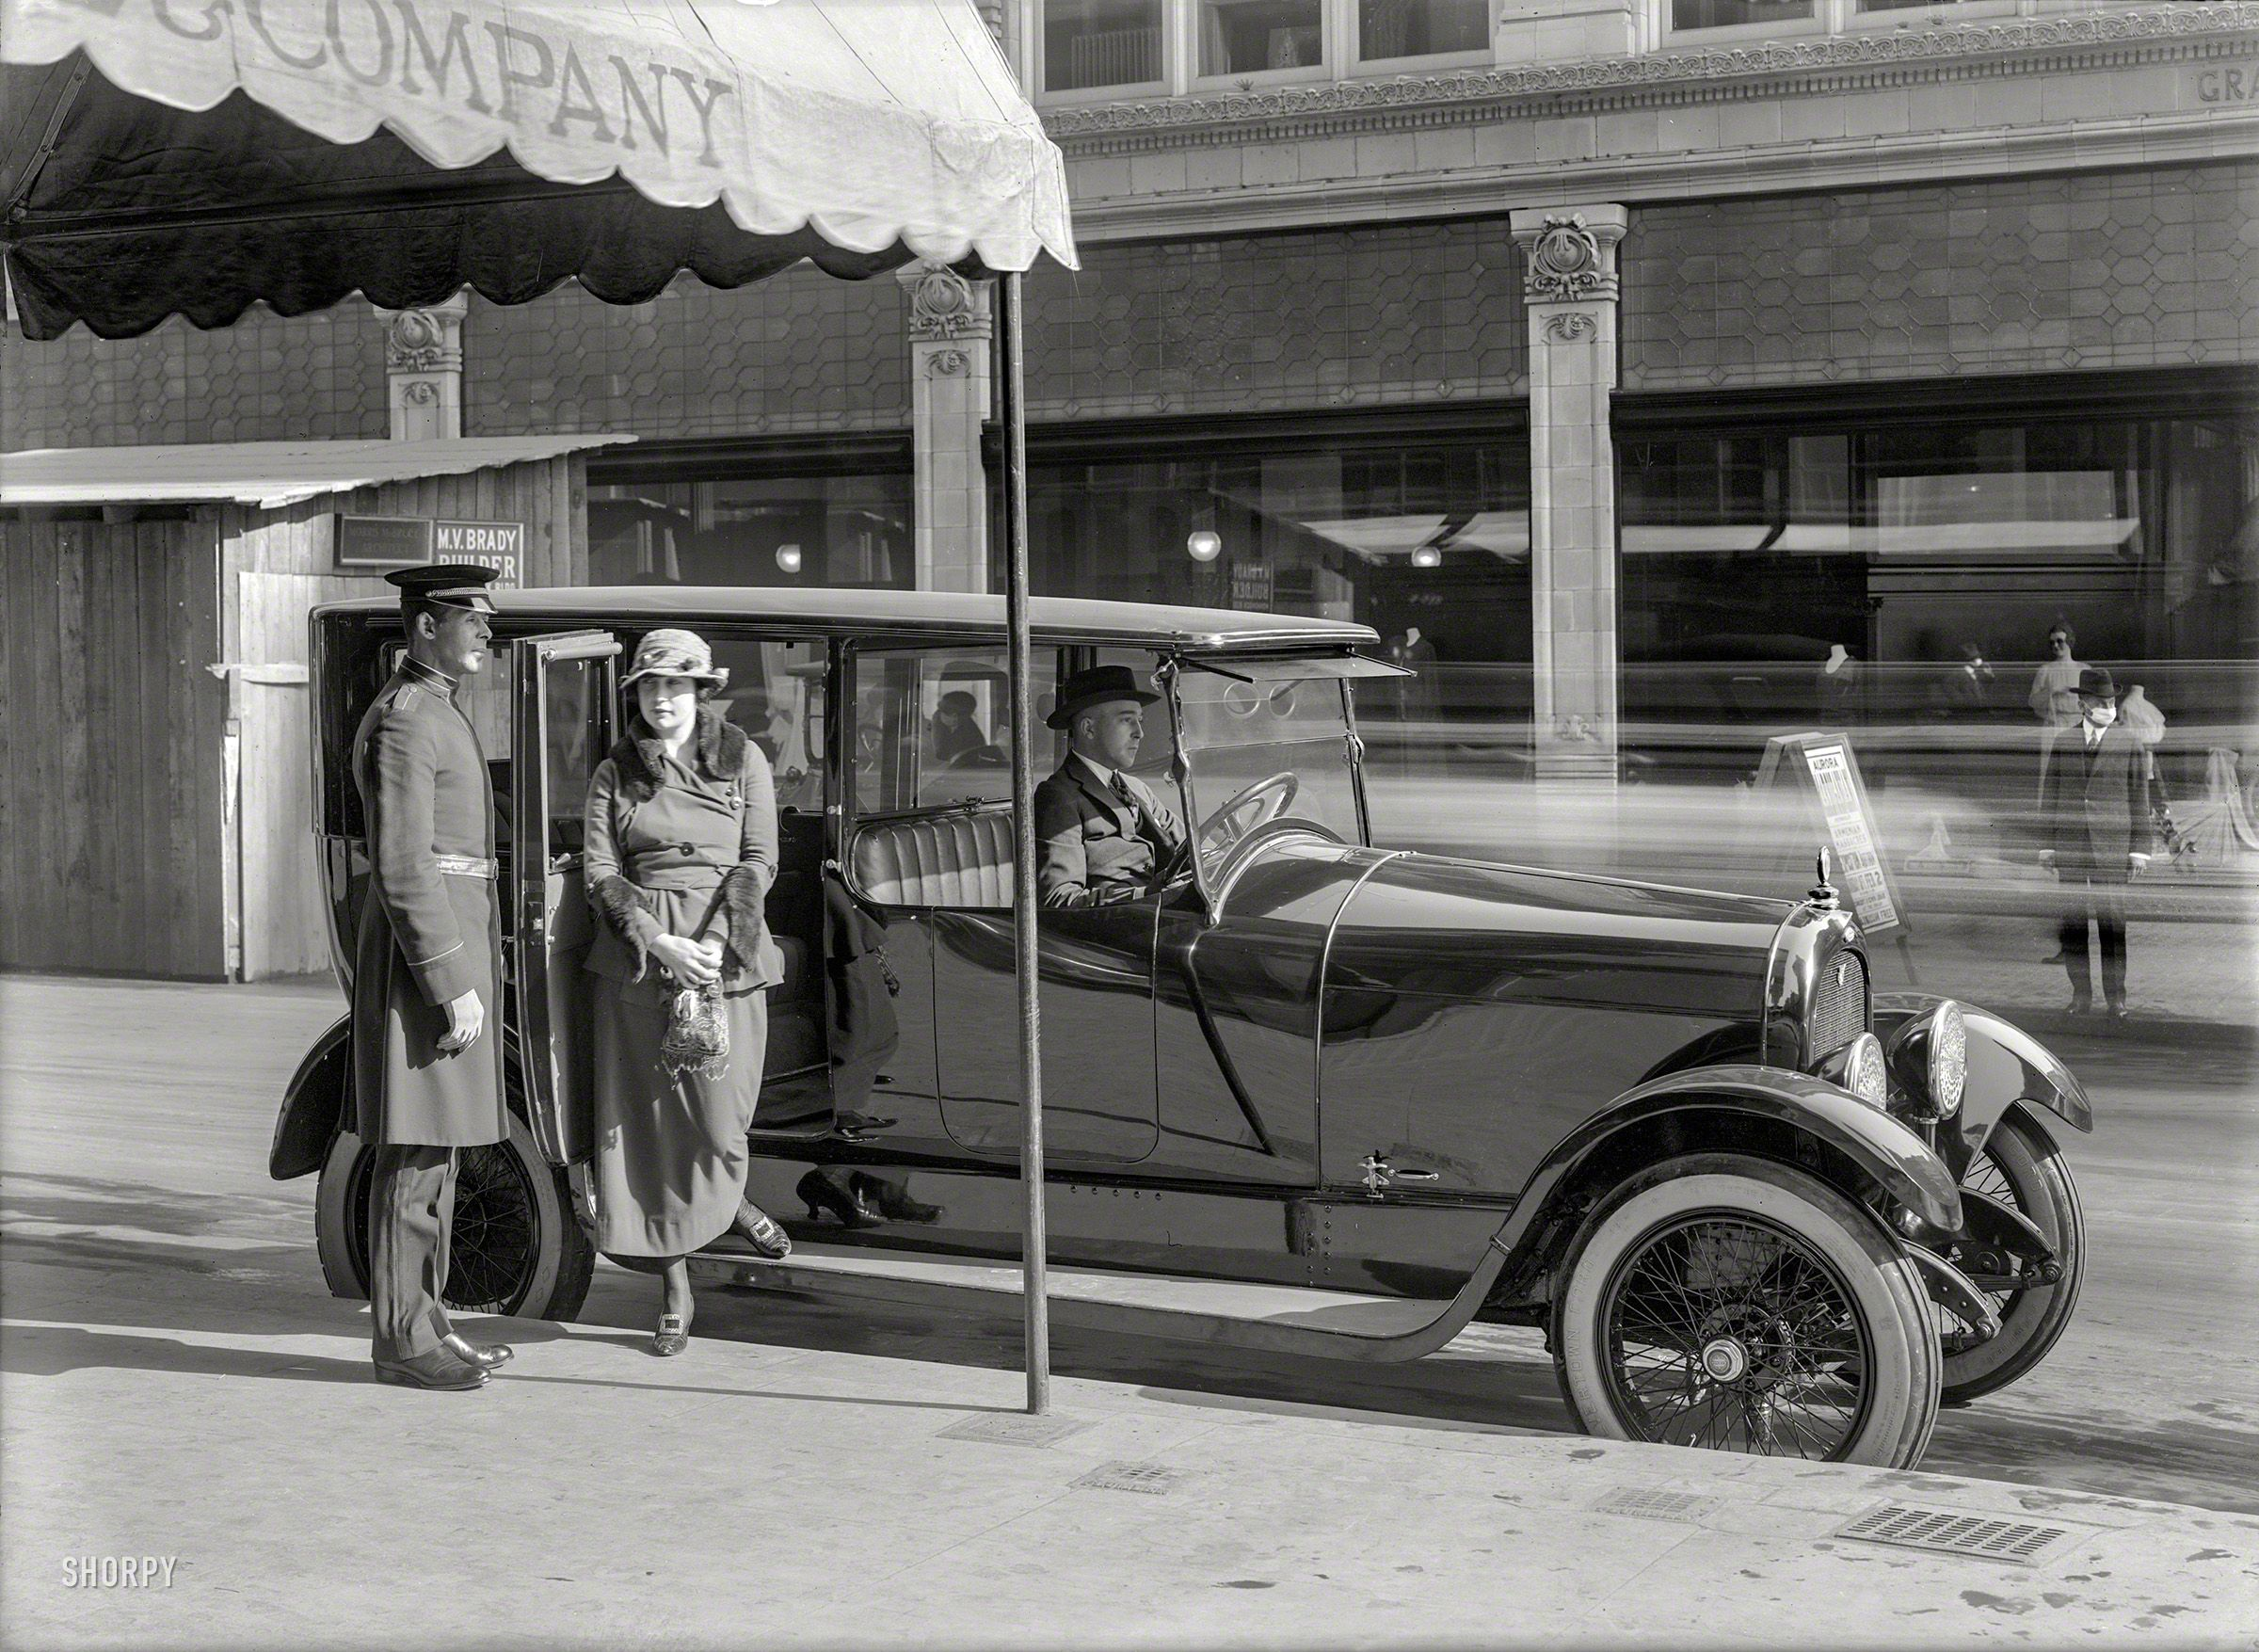 """Somewhere in San Francisco circa 1919. """"Woman alighting from Marmon limousine."""" At first this would seem to be all about the car, until we notice the pedestrian with the influenza face mask, and sign advertising what seems to be an appearance by the actress Aurora Mardiganian in connection with Aremnian Massacres"""